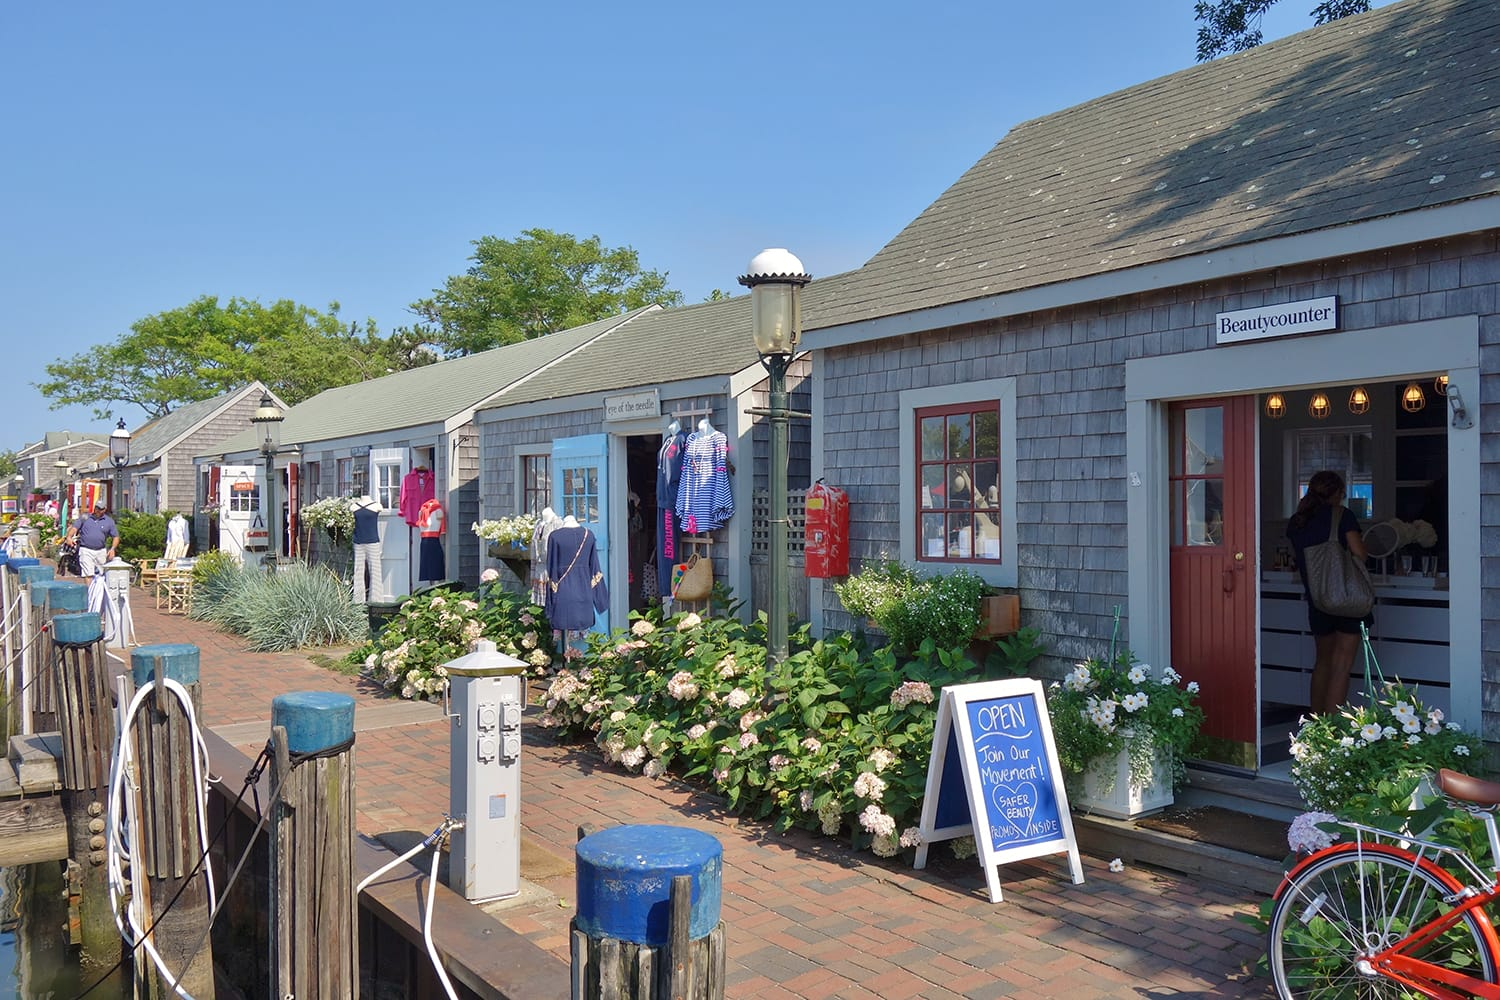 Traditional New England buildings and stores on Nantucket Island in Massachusetts, USA